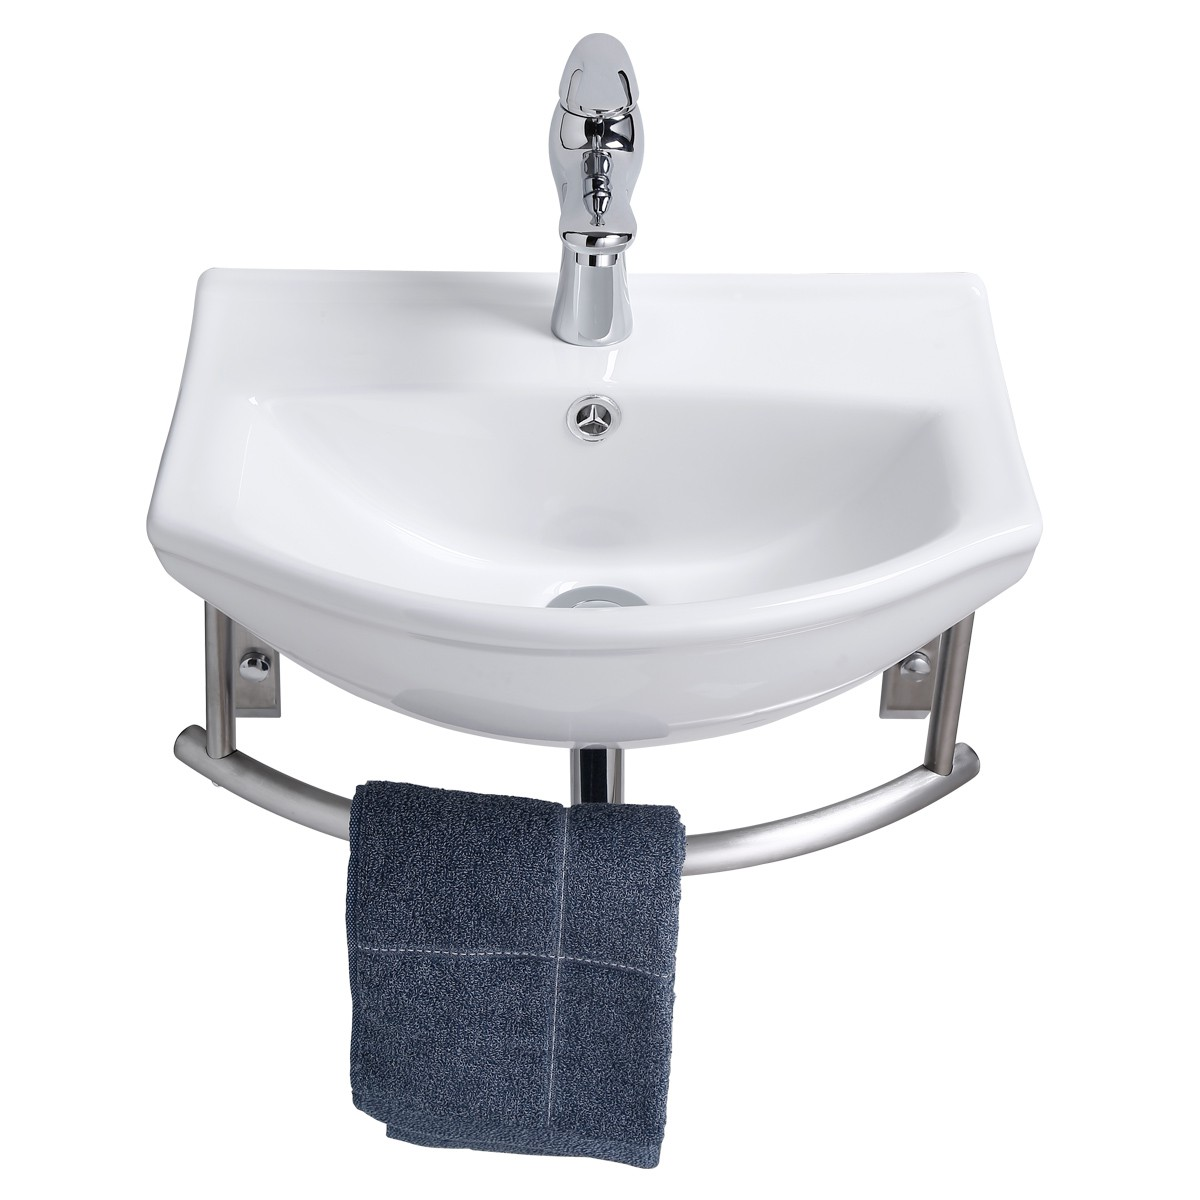 Small Wall Mount Bathroom Sink With Stainless Steel Towel Bar Faucet